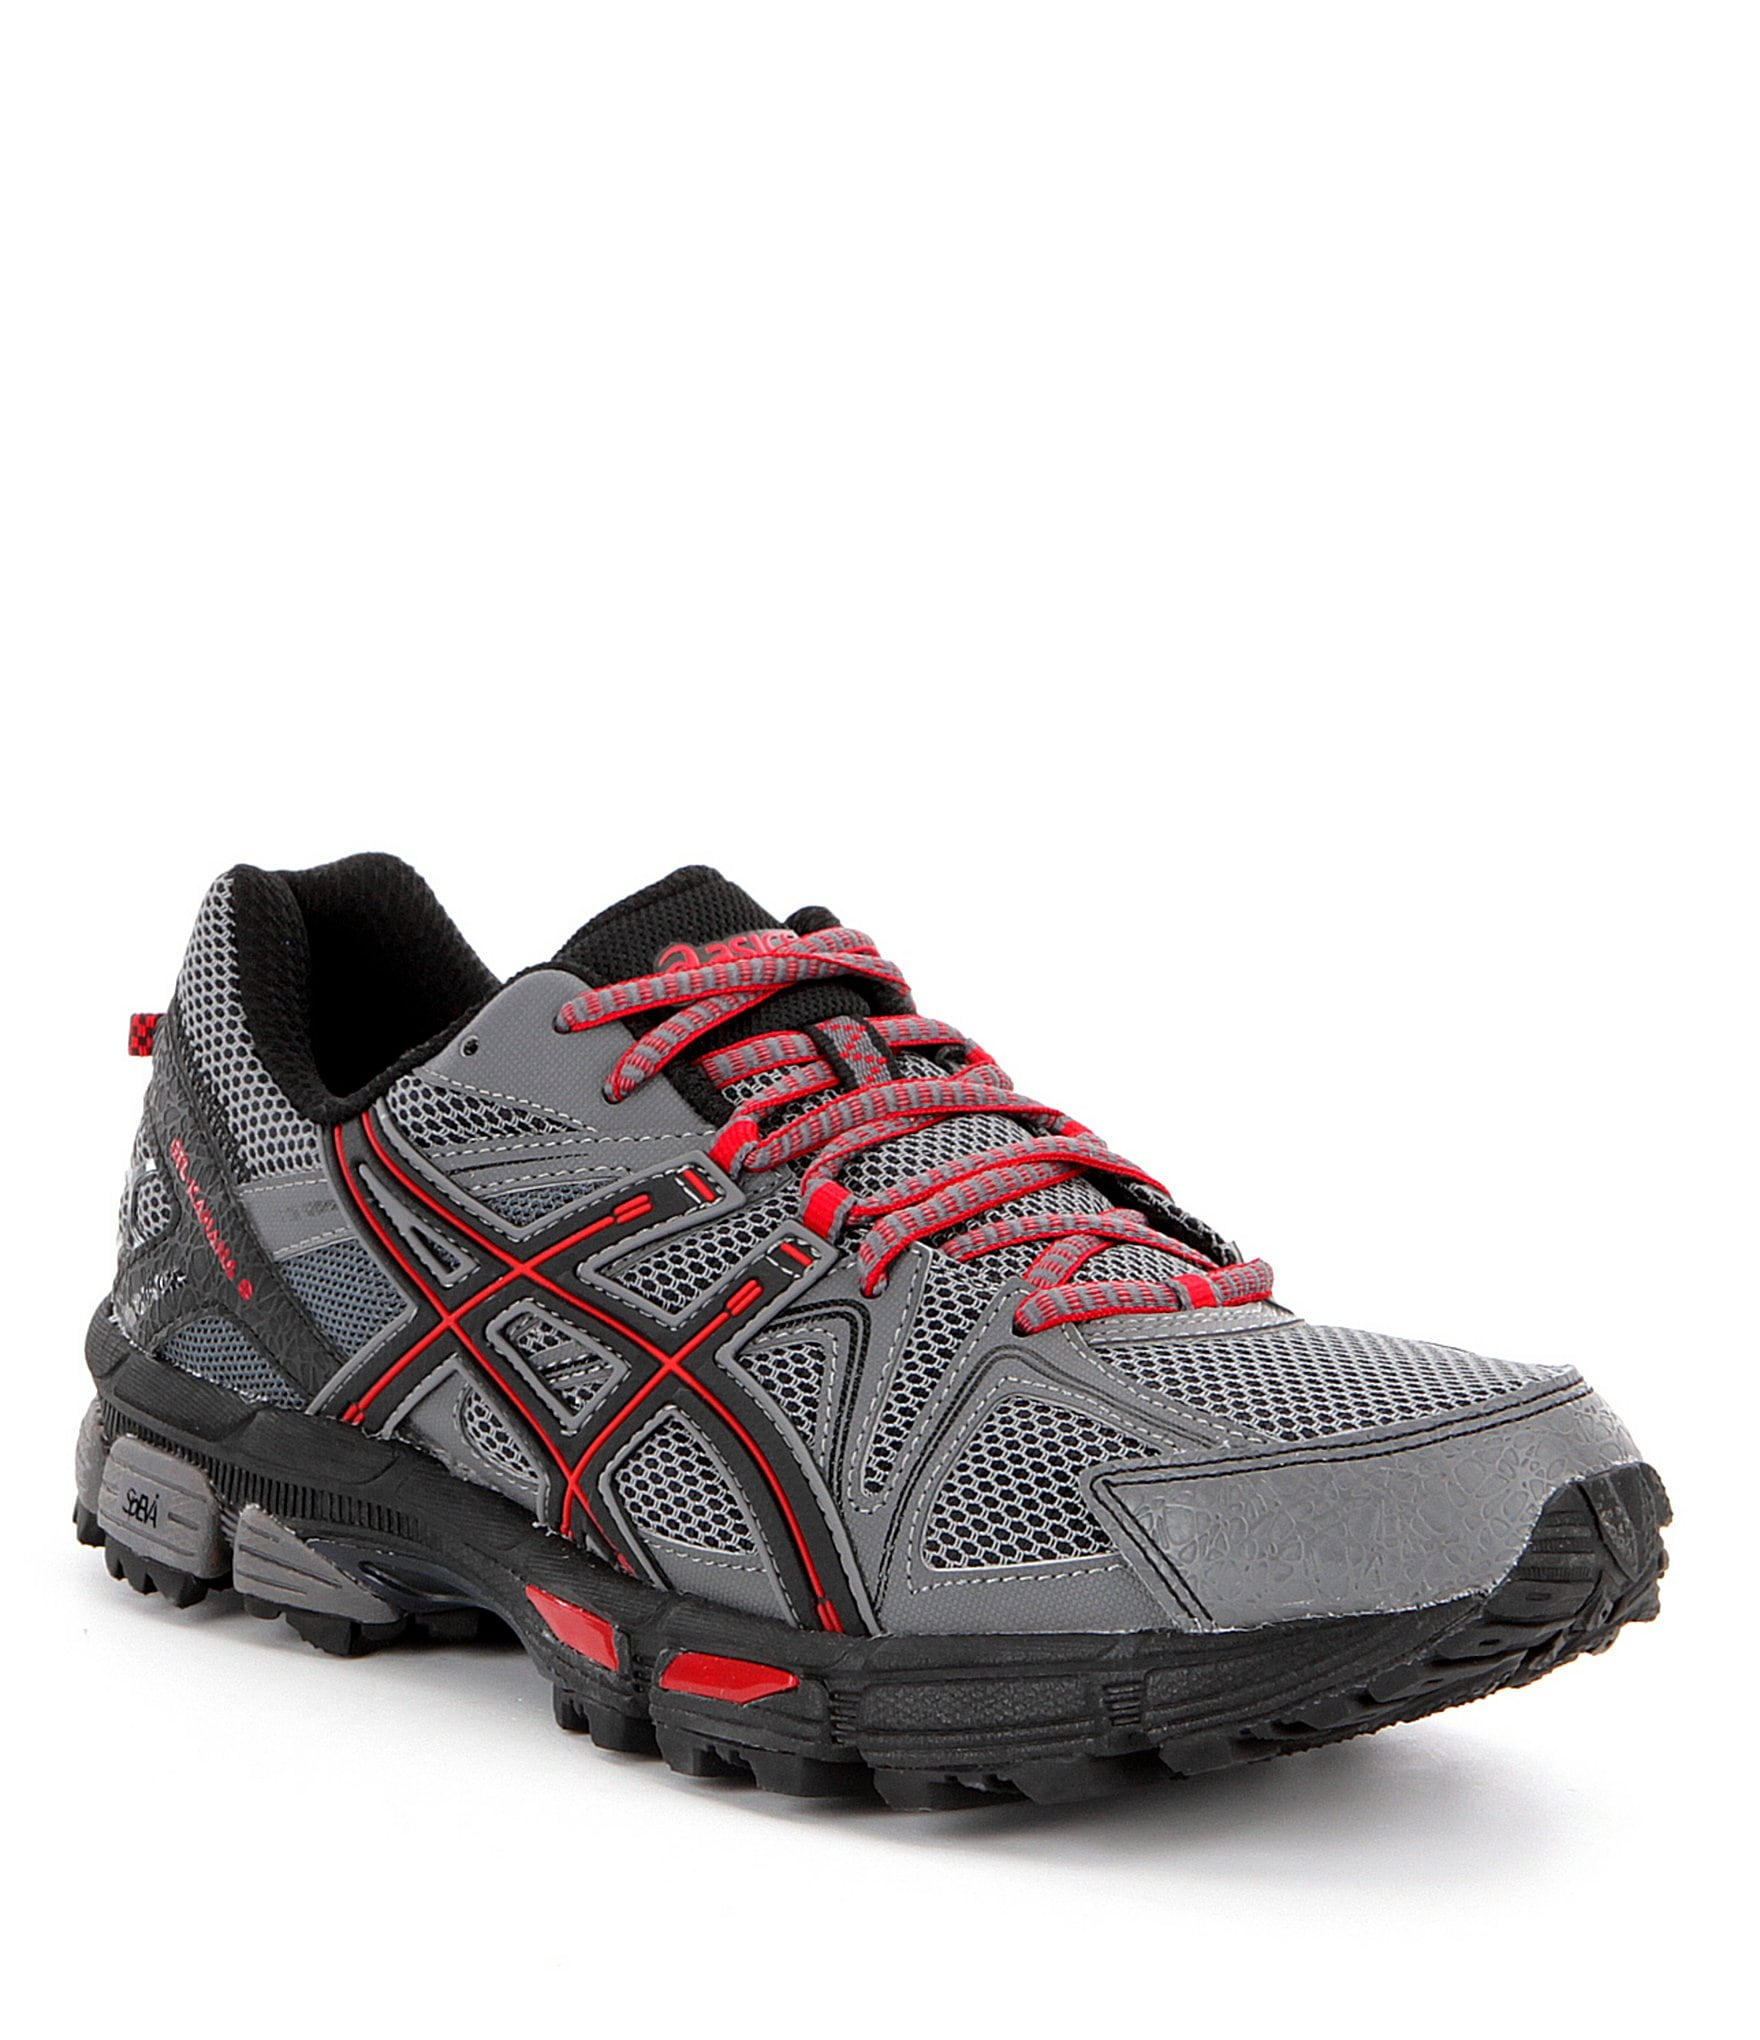 Are Asics Shoes True To Size